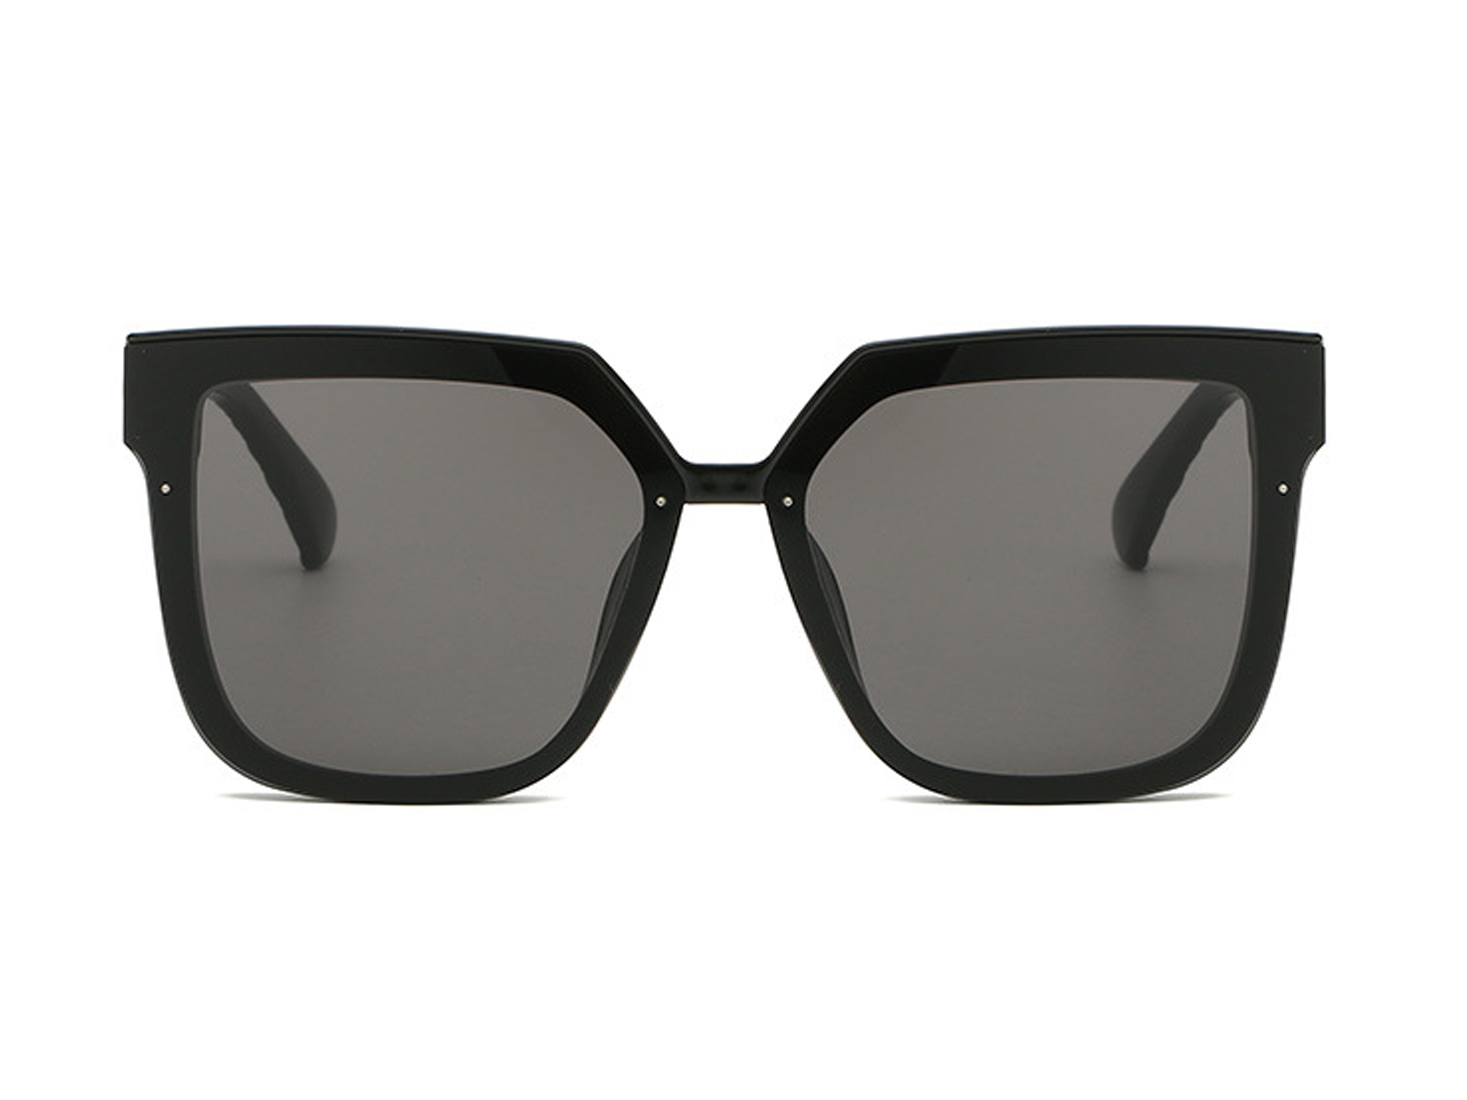 Trailblazer Cat-Eye Shades -Black - Front